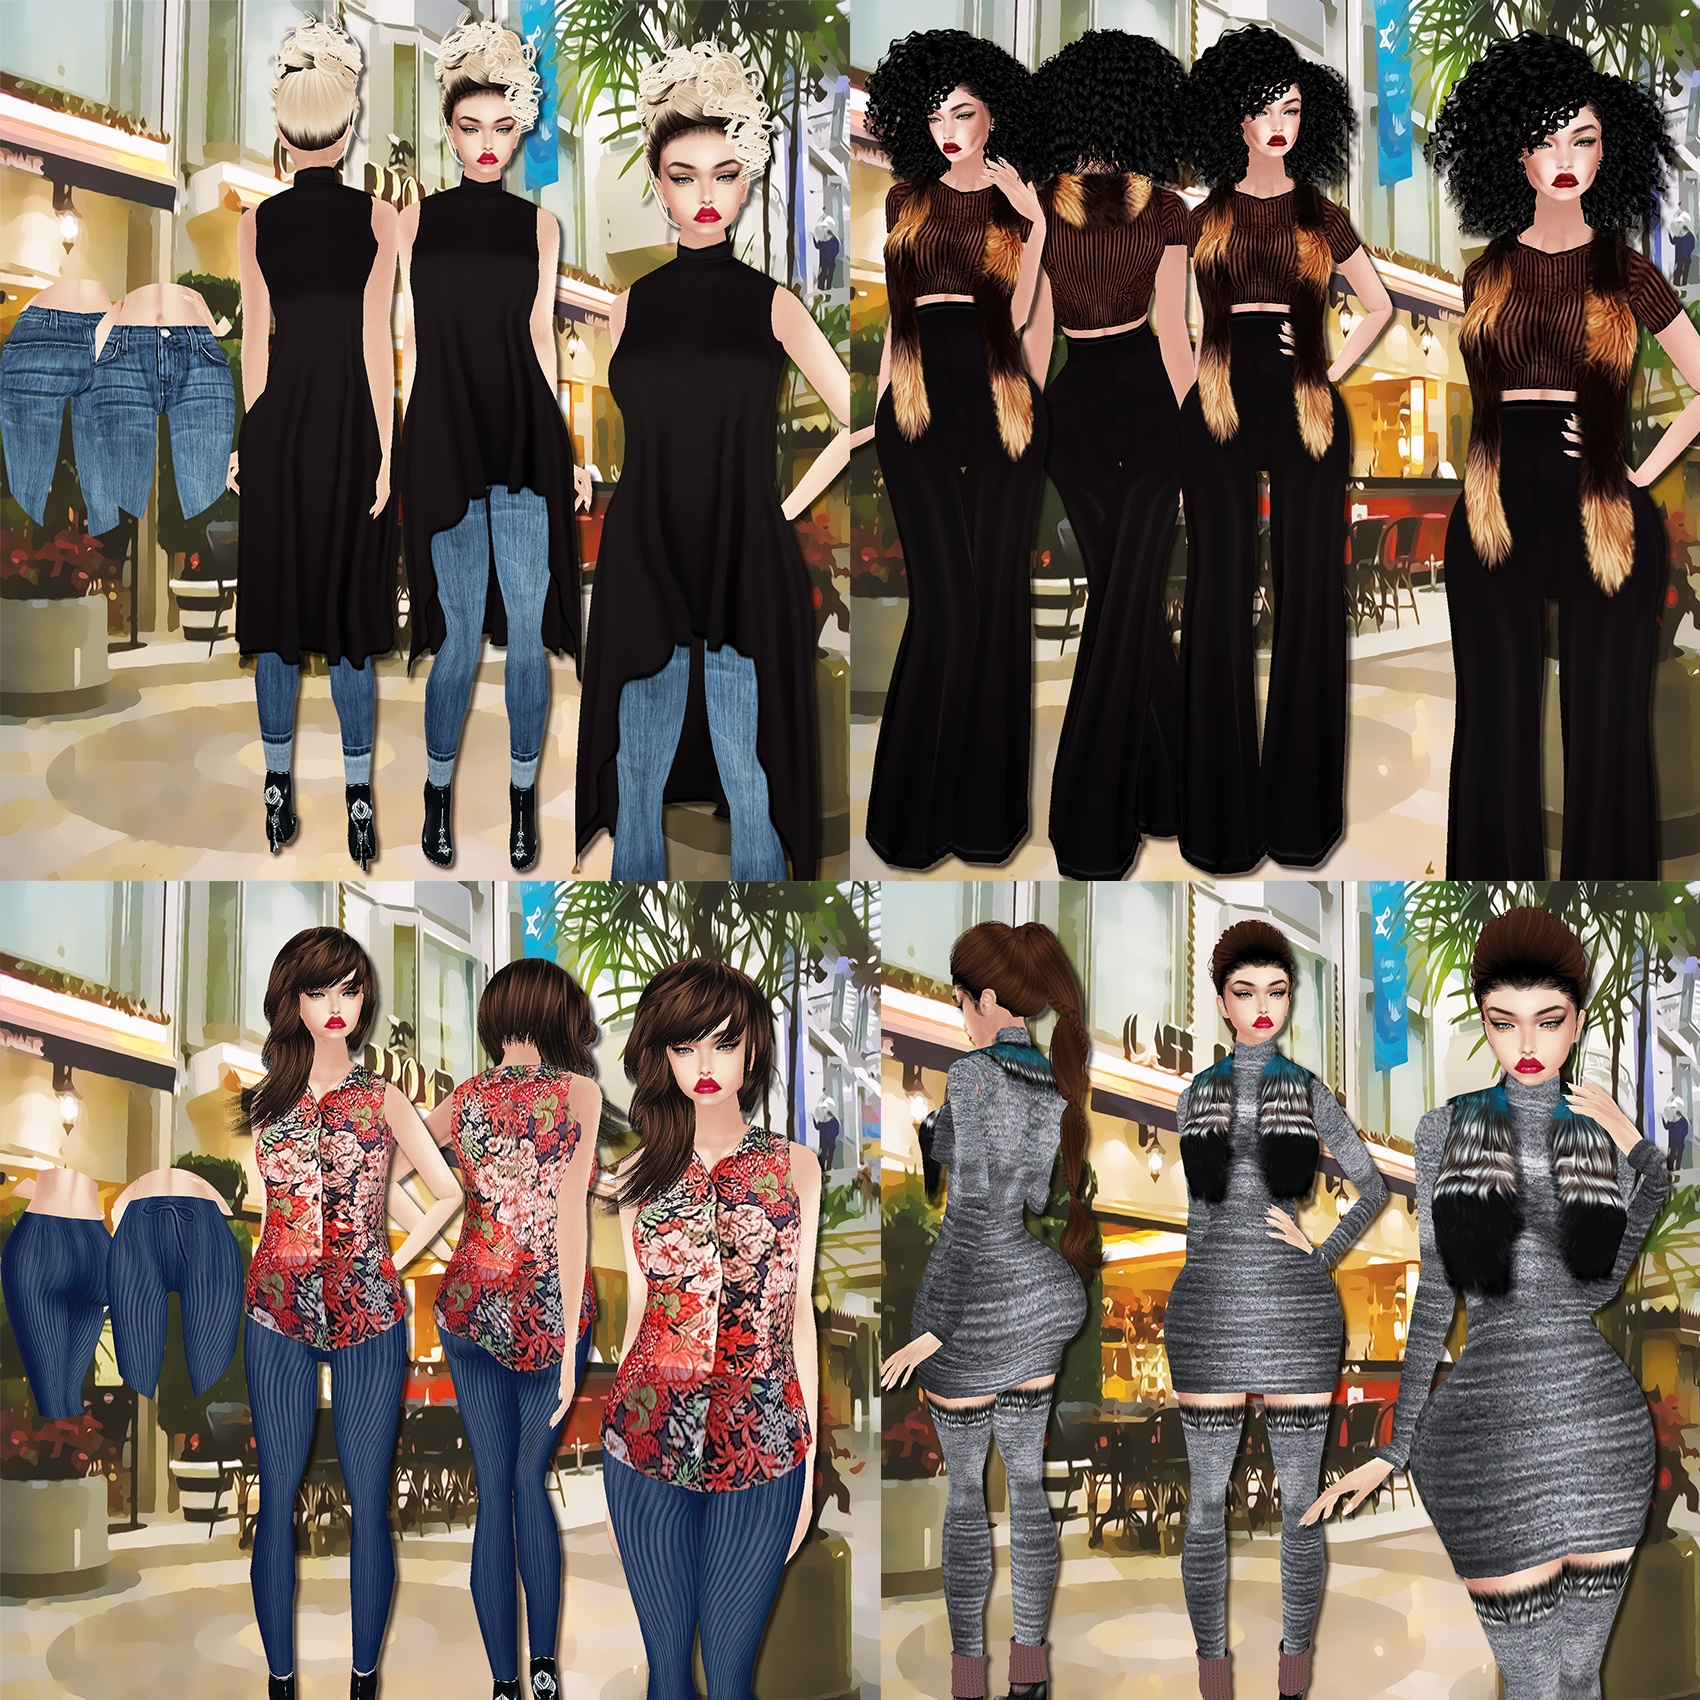 NOW $20 FULL COMBO - At the Mall - x4 Outfits